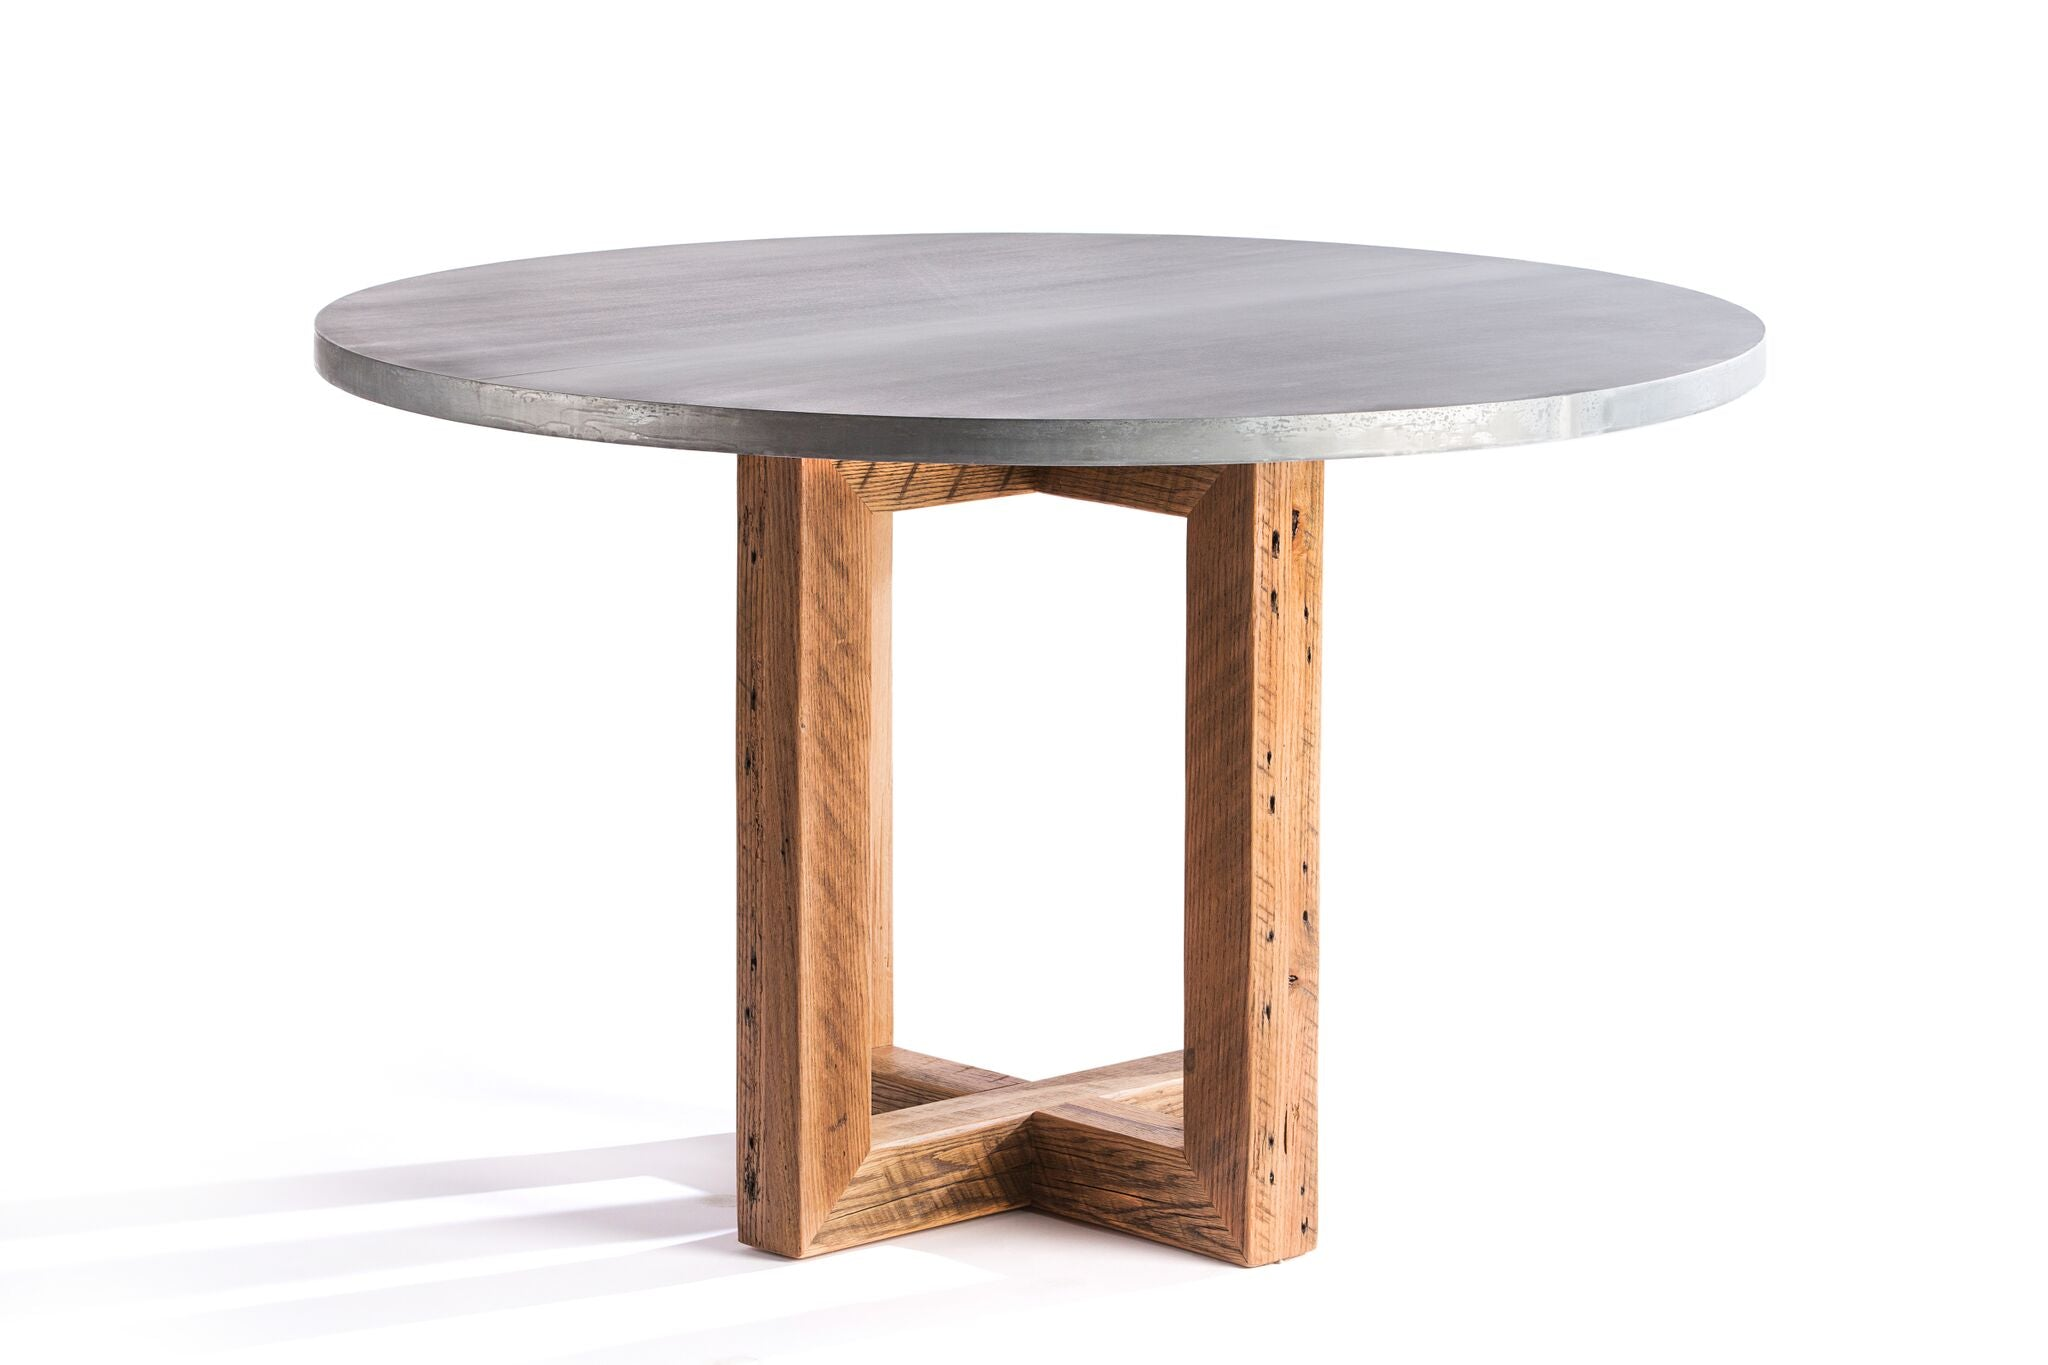 "Zinc Round Tables | Winston Table | BLACKENED BRONZE | Natural Black Walnut | CUSTOM SIZE D 54 H 30 | 1.5"" Standard 